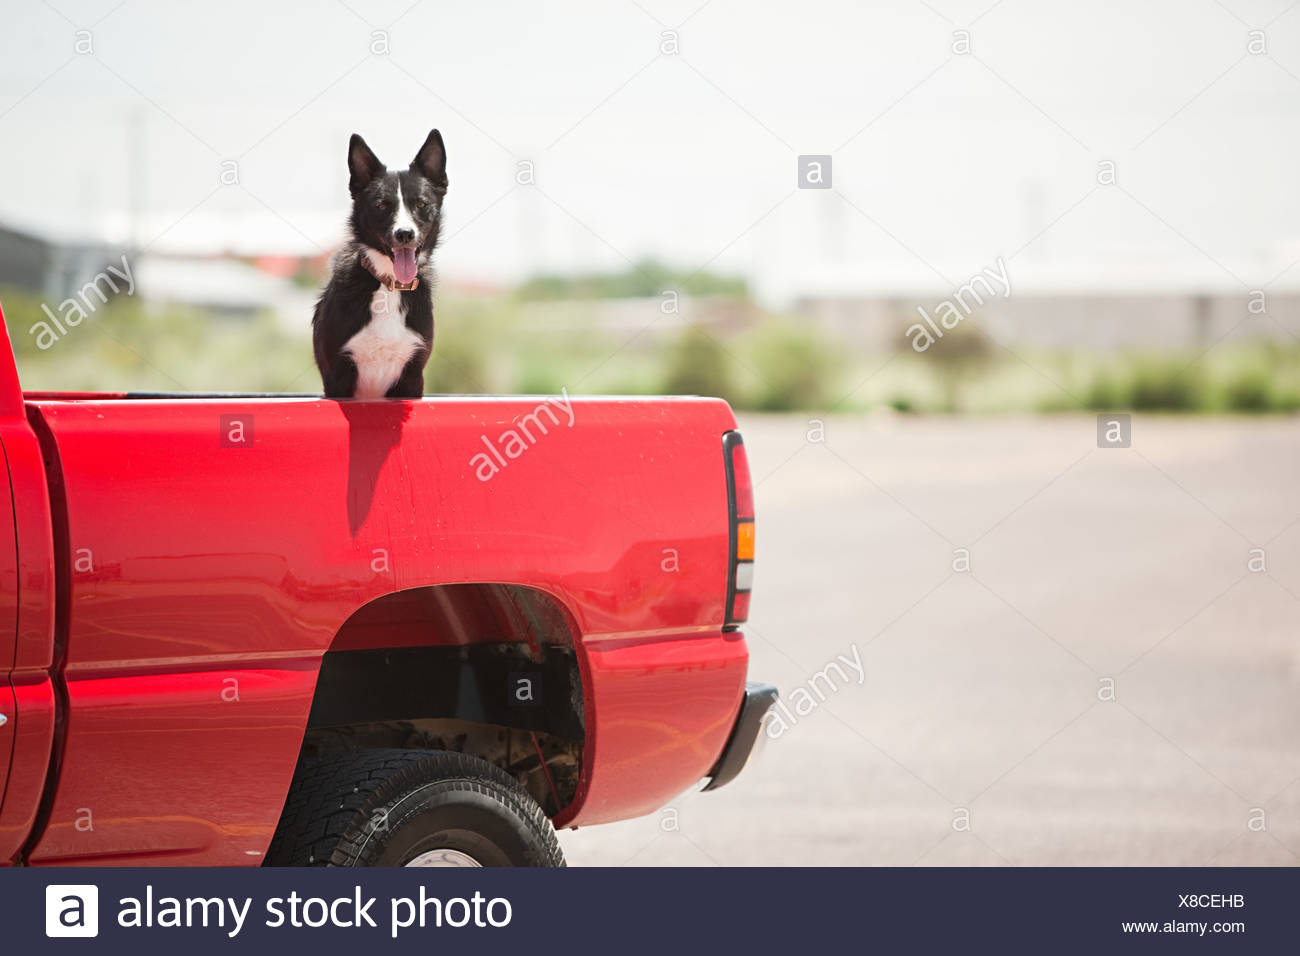 Dog in red truck - Stock Image